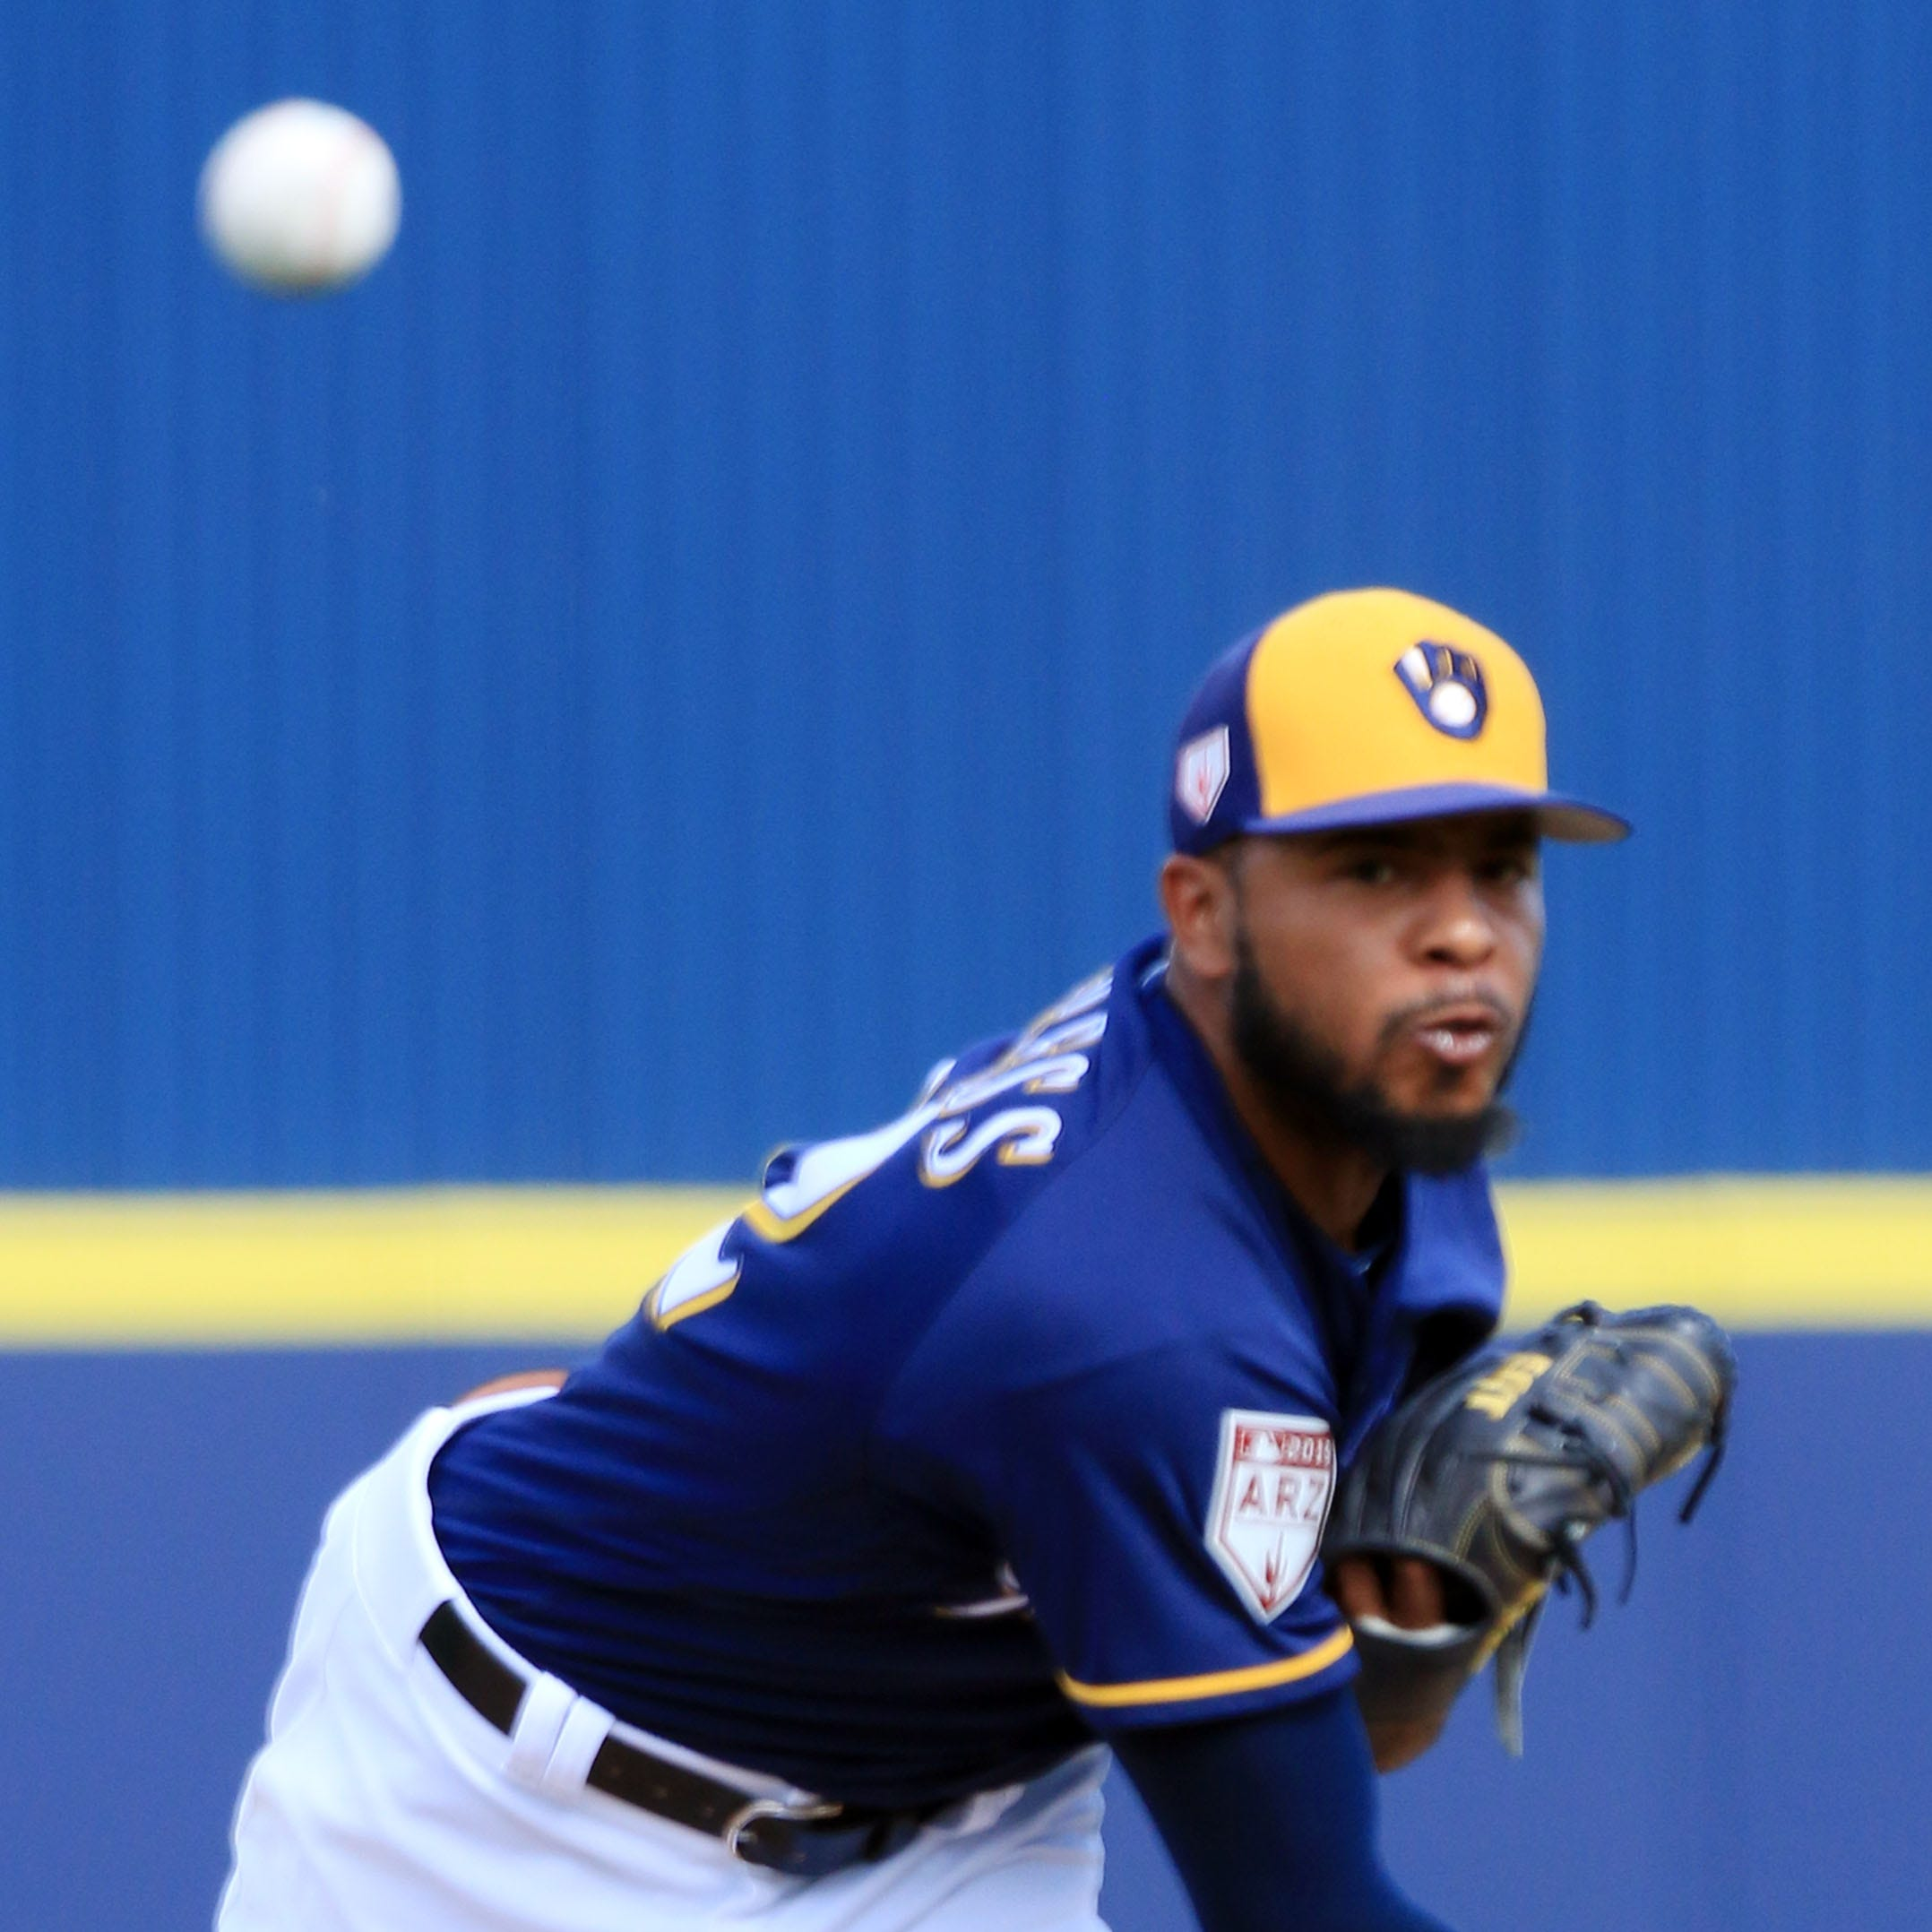 After rough rehab stint at AAA level, reliever Jeremy Jeffress will rejoin Brewers on Monday